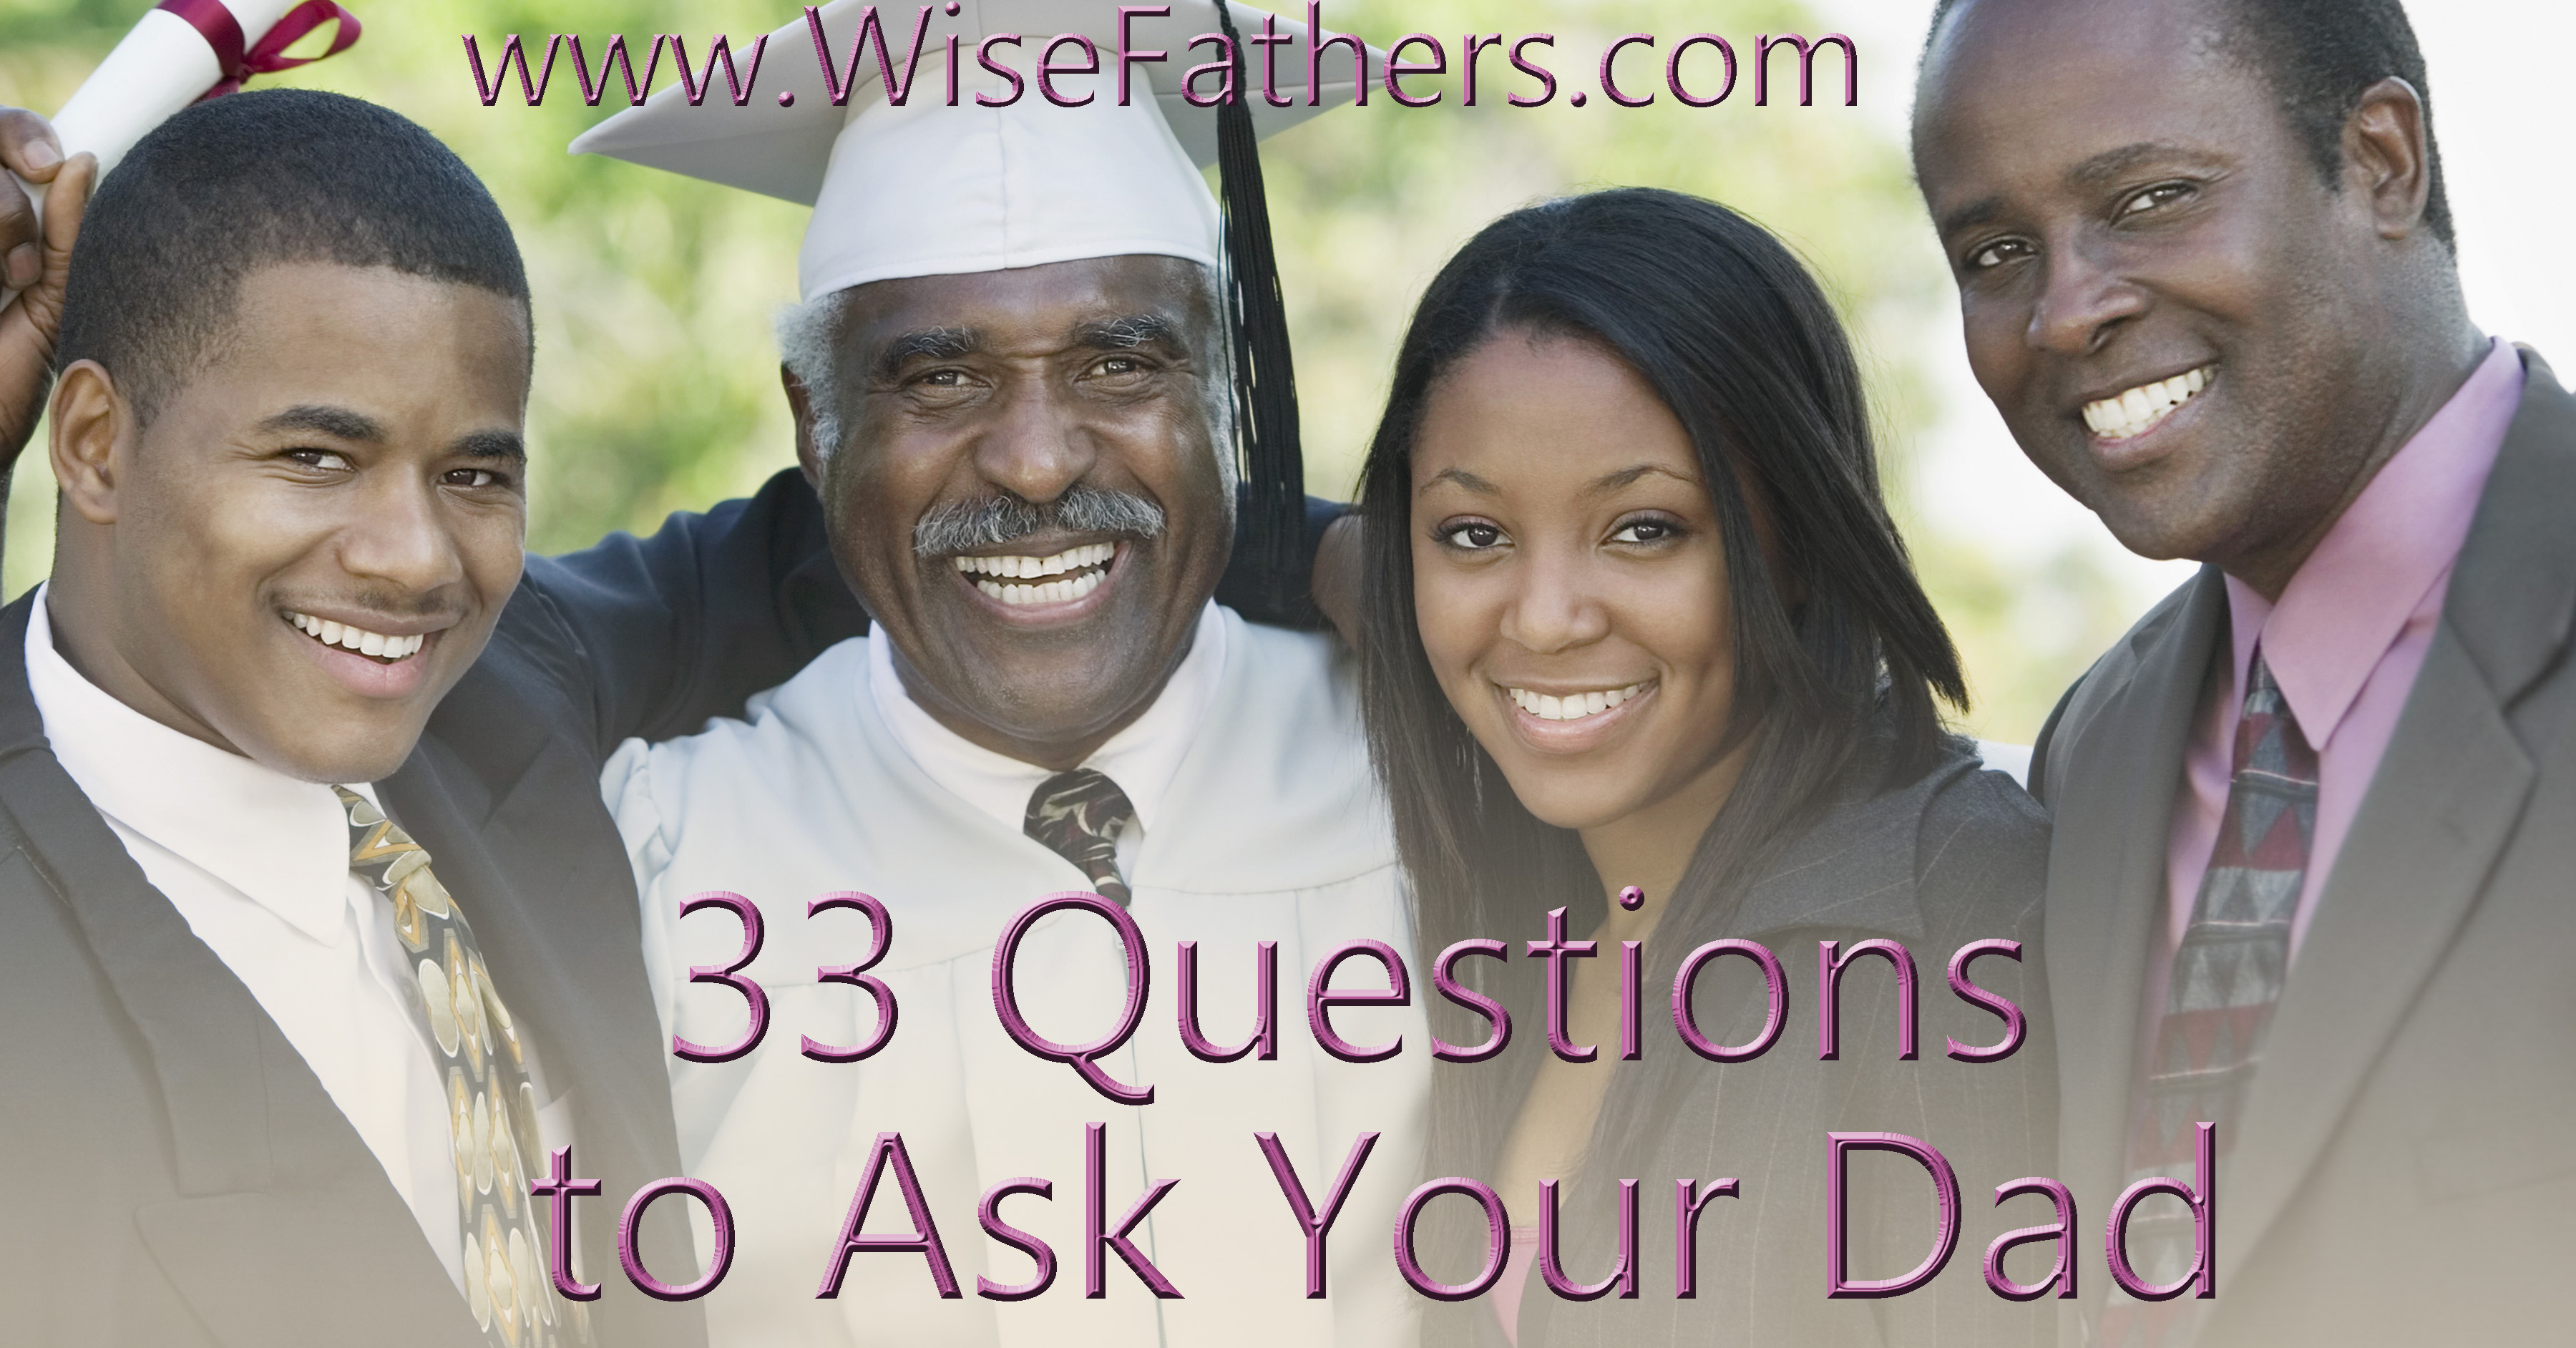 33 Questions To Ask Your Dad